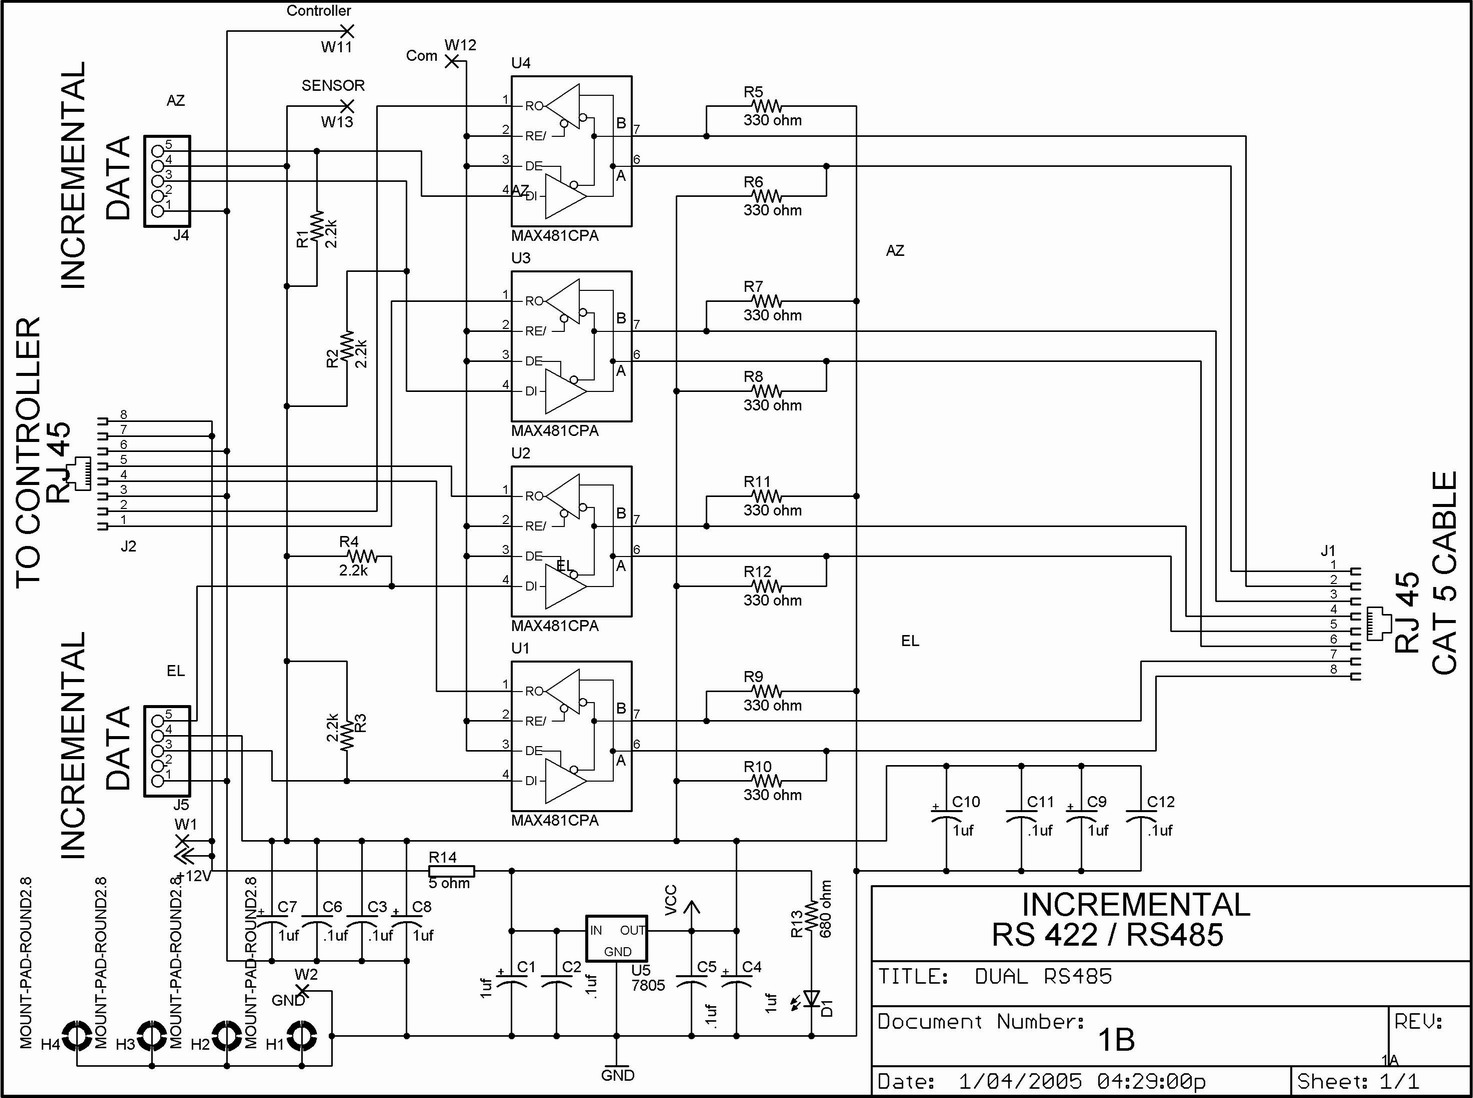 91 Honda Accord Wiring Diagram Further Civic Ignition on 92 Acura Integra Fuel Pump Relay Location